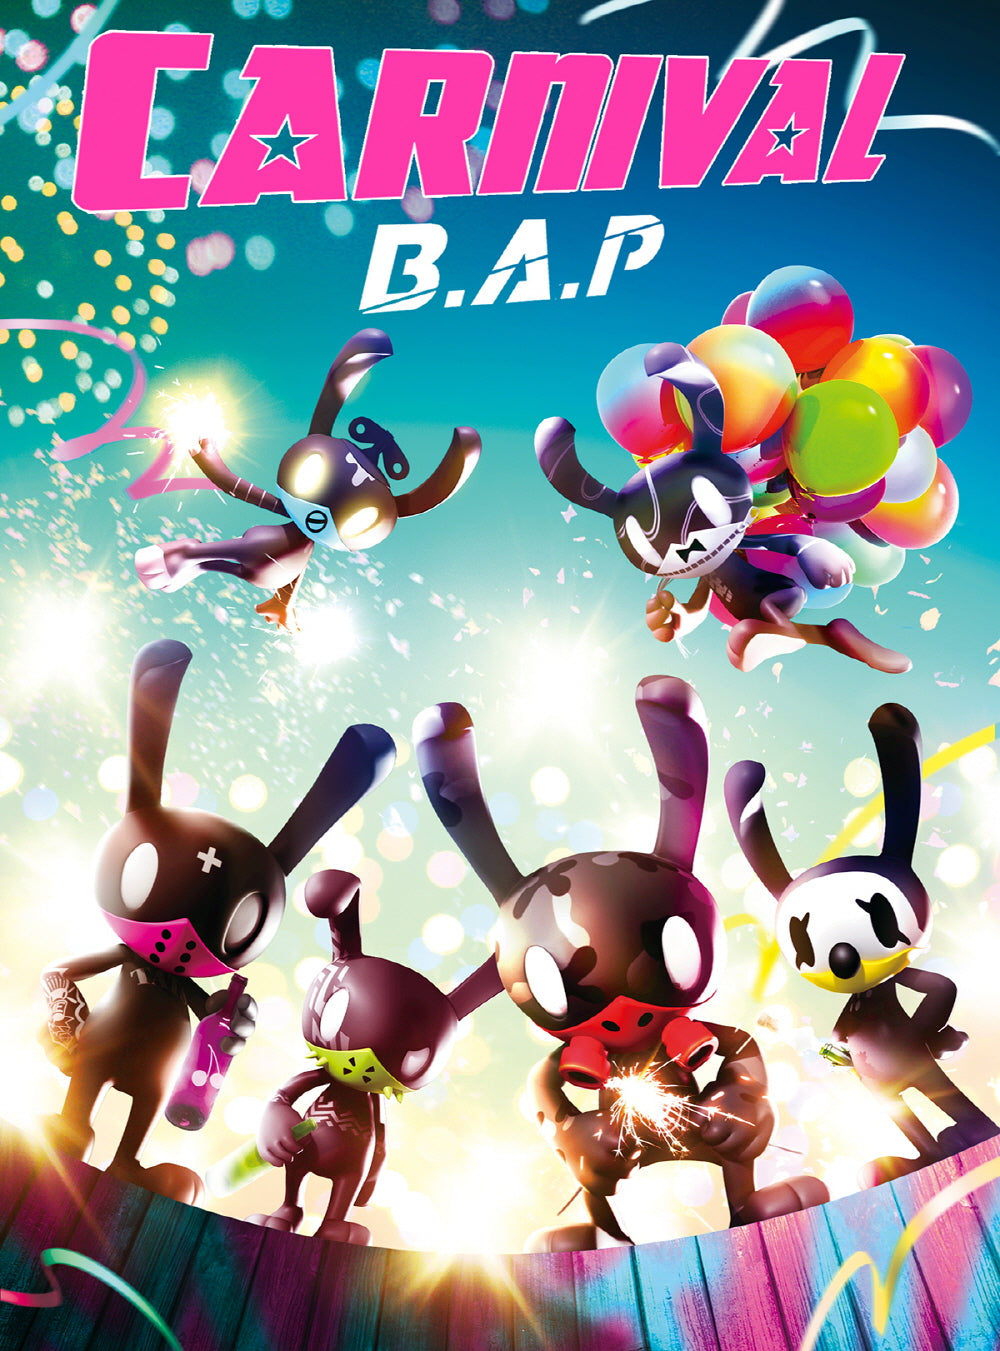 B.A.P - CARNIVAL (Special Ver.)